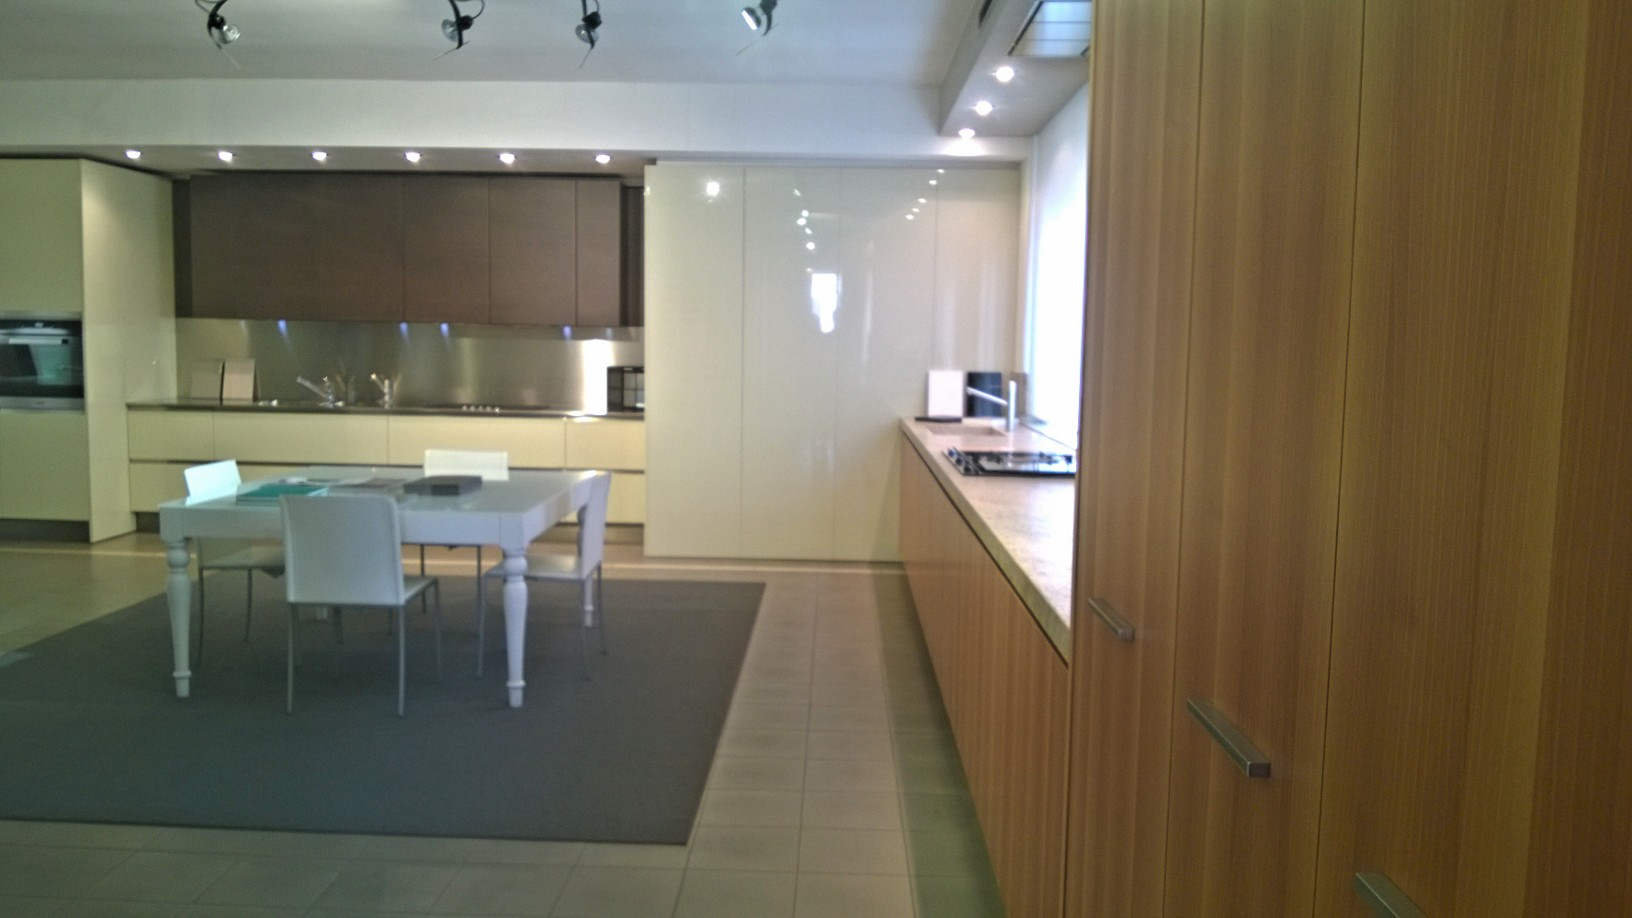 Centro cucine e arredamentokitchens and furnishing center - Centro cucine cagliari ...